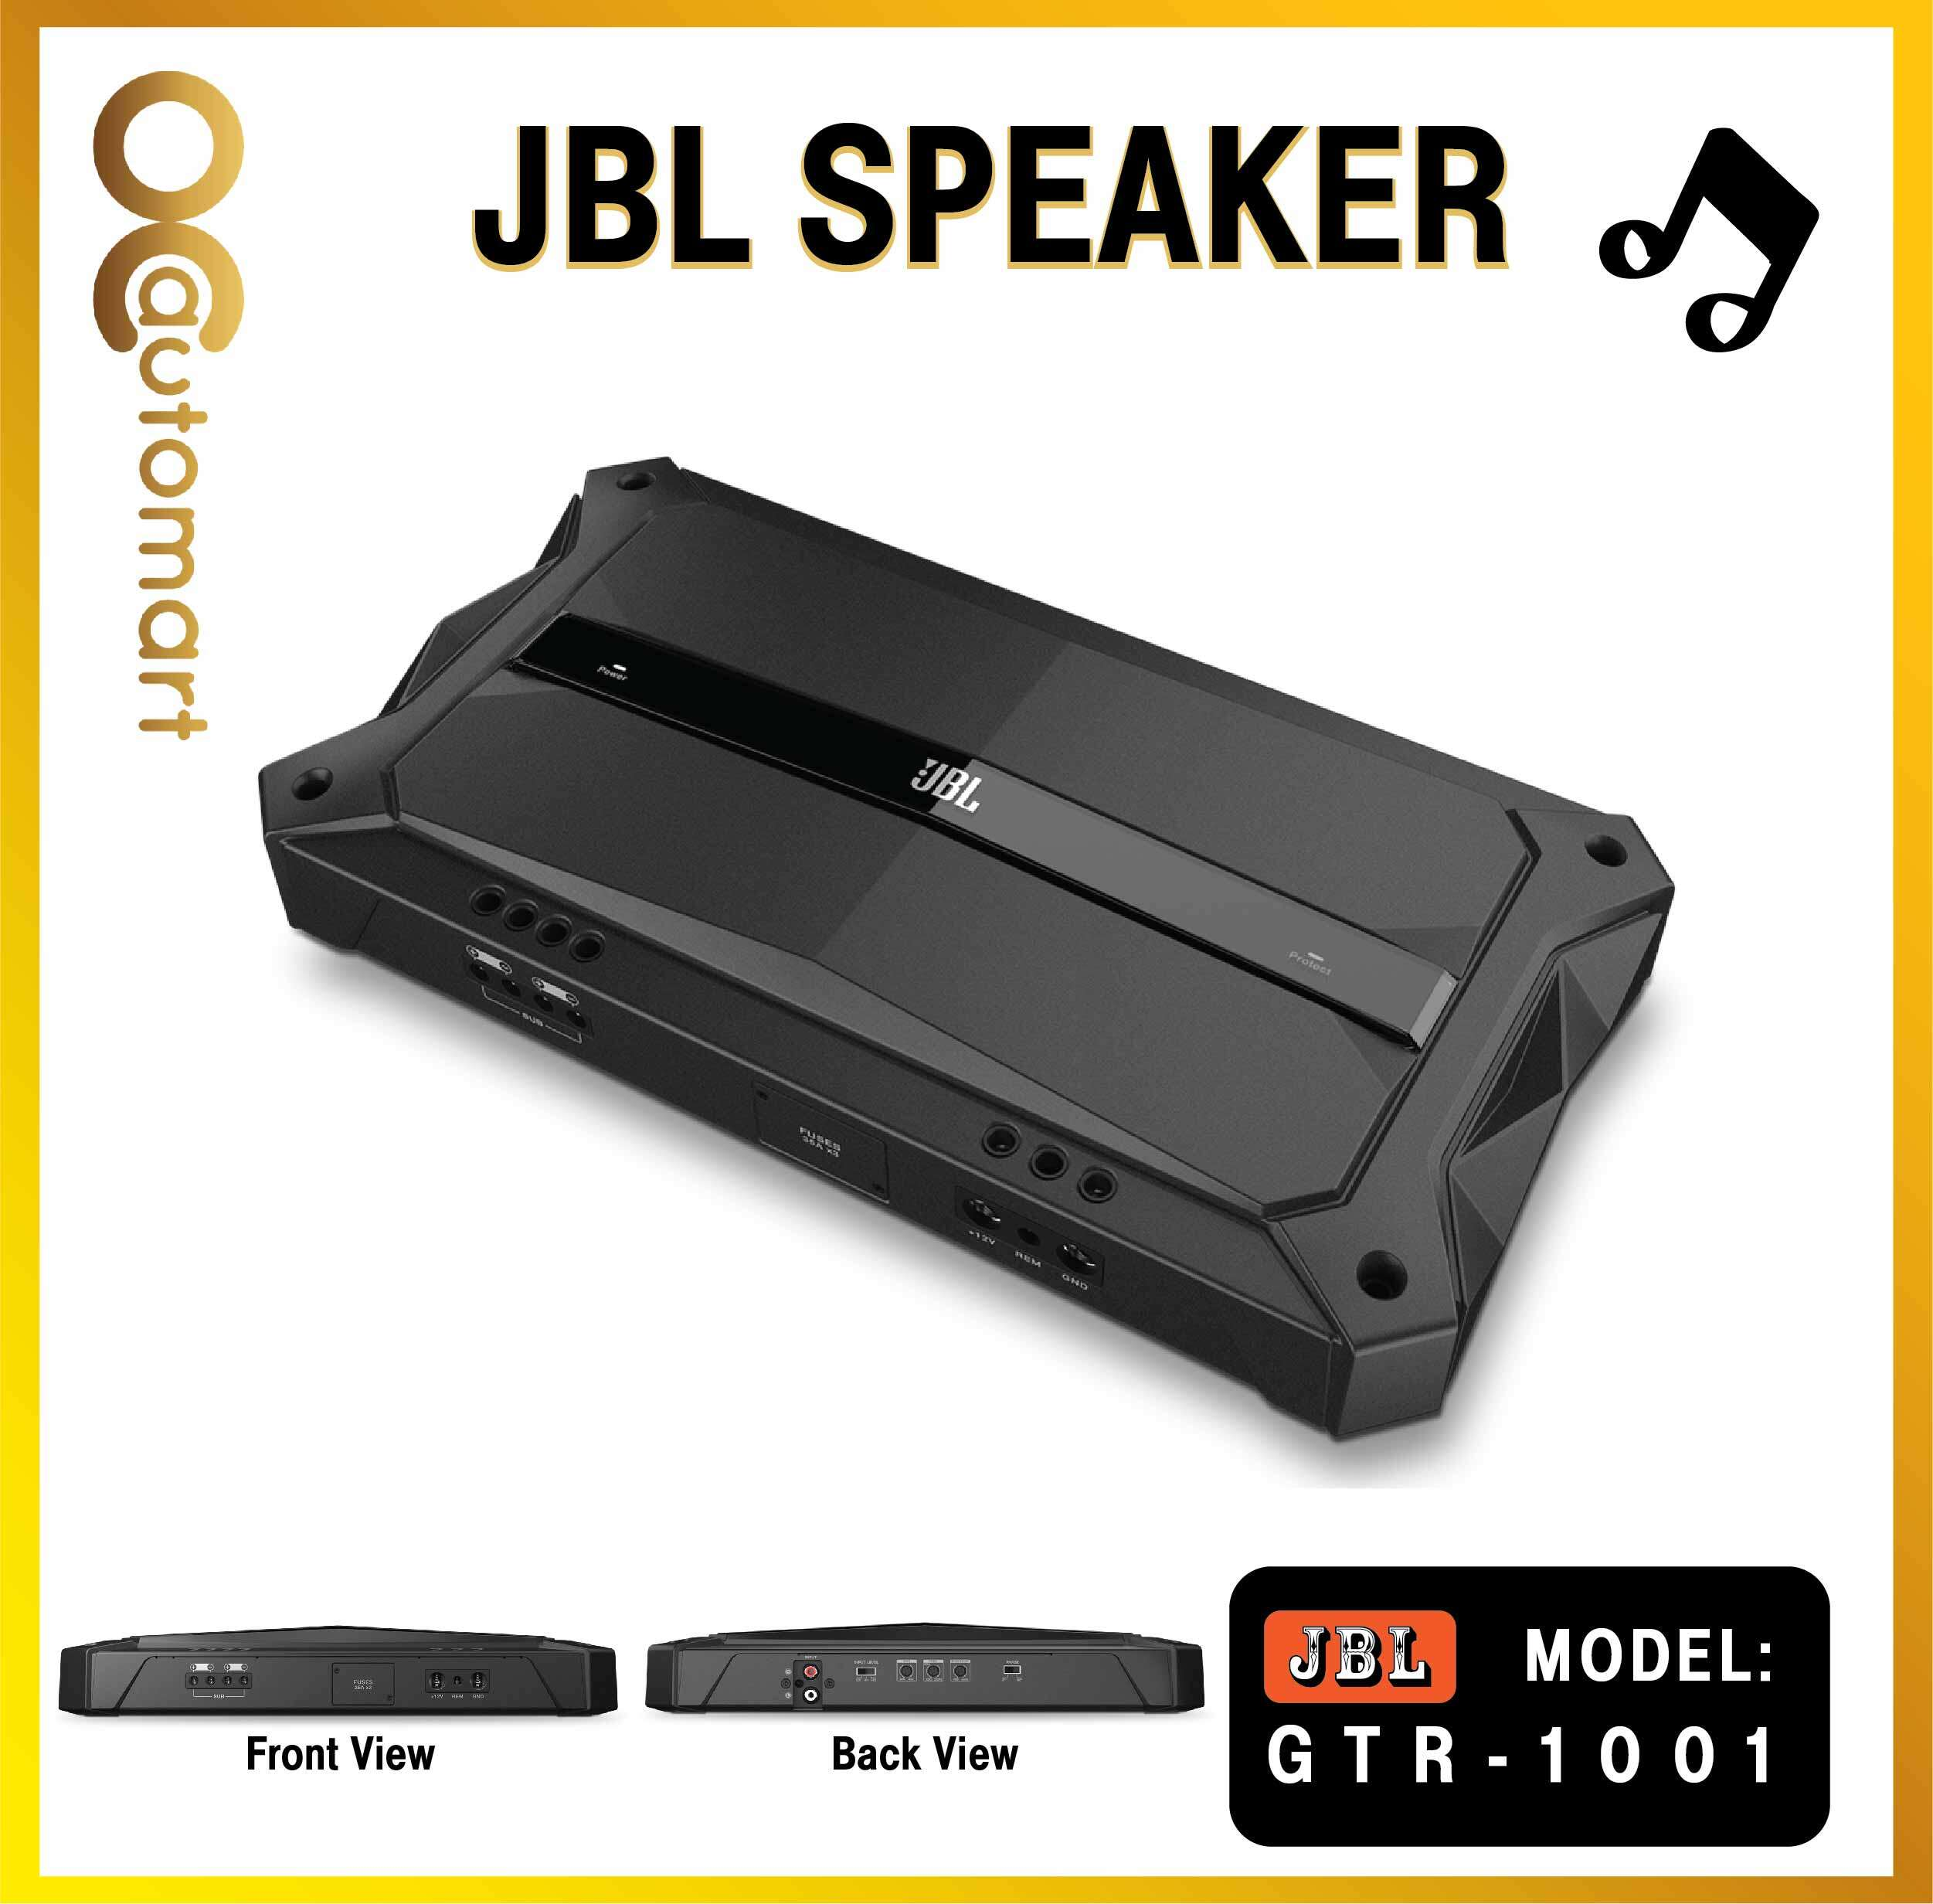 JBL GTR-1001 Mono subwoofer amplifier 1,000 watts RMS x 1 at 2 ohms